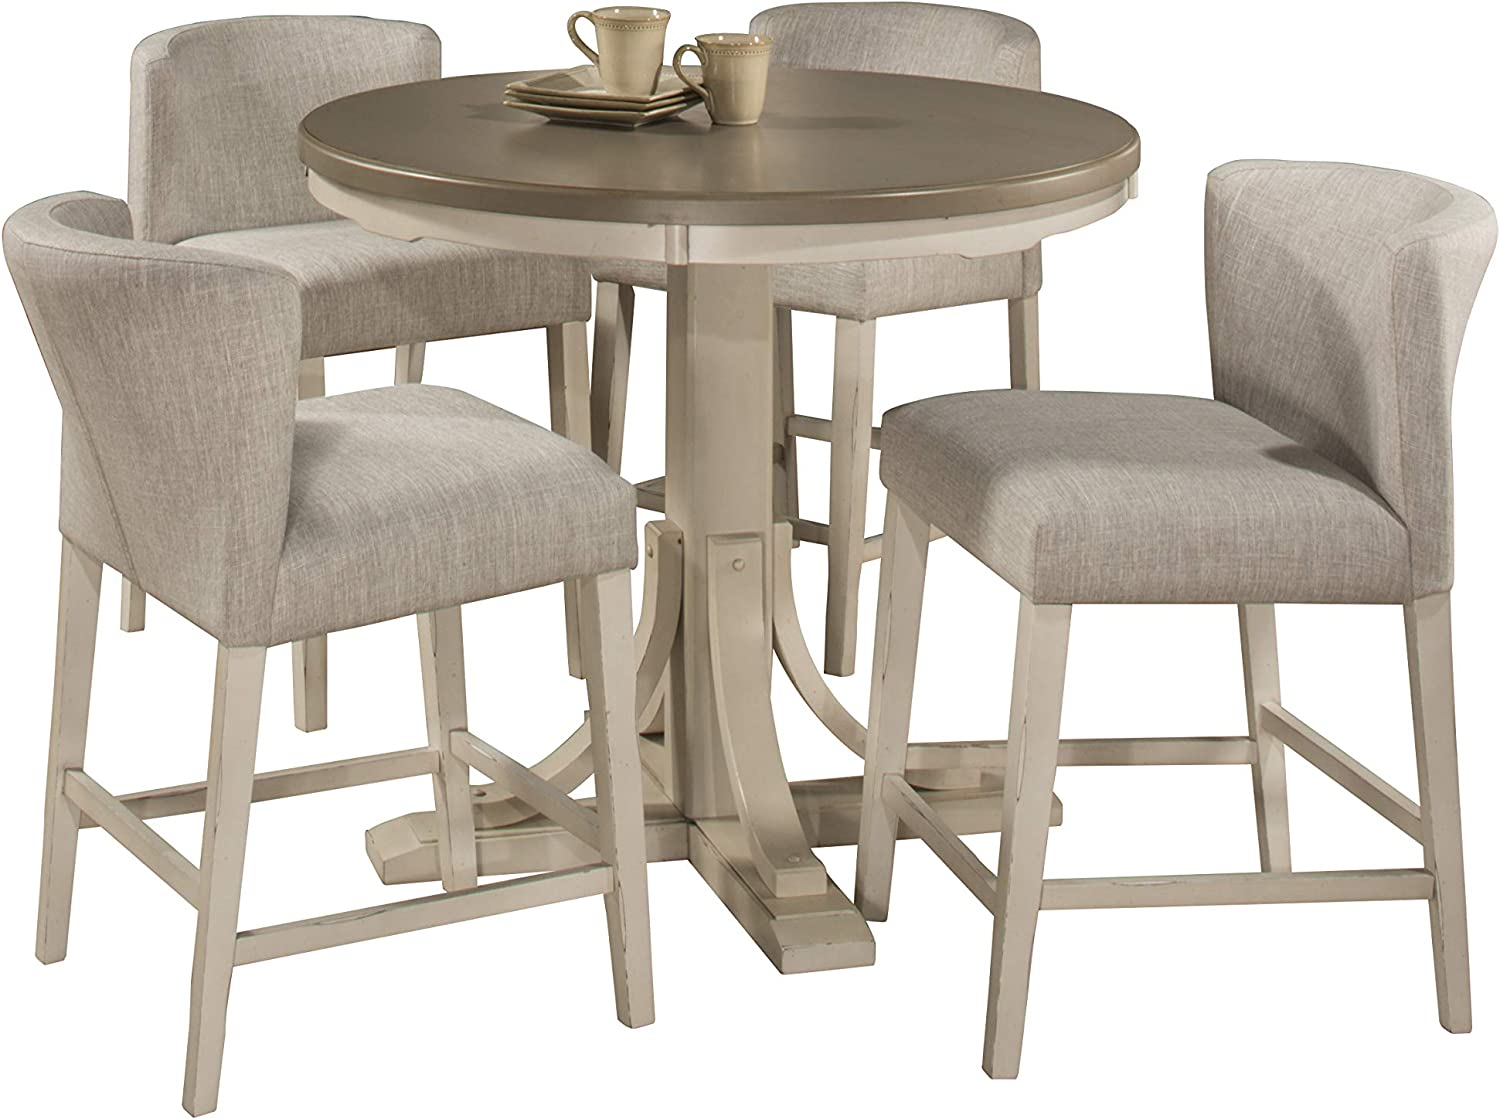 Hillsdale Furniture Hillsdale Clarion Round Counter Height Wing Arm Stools, Distressed Gray/Sea White 5 Piece Dining Set